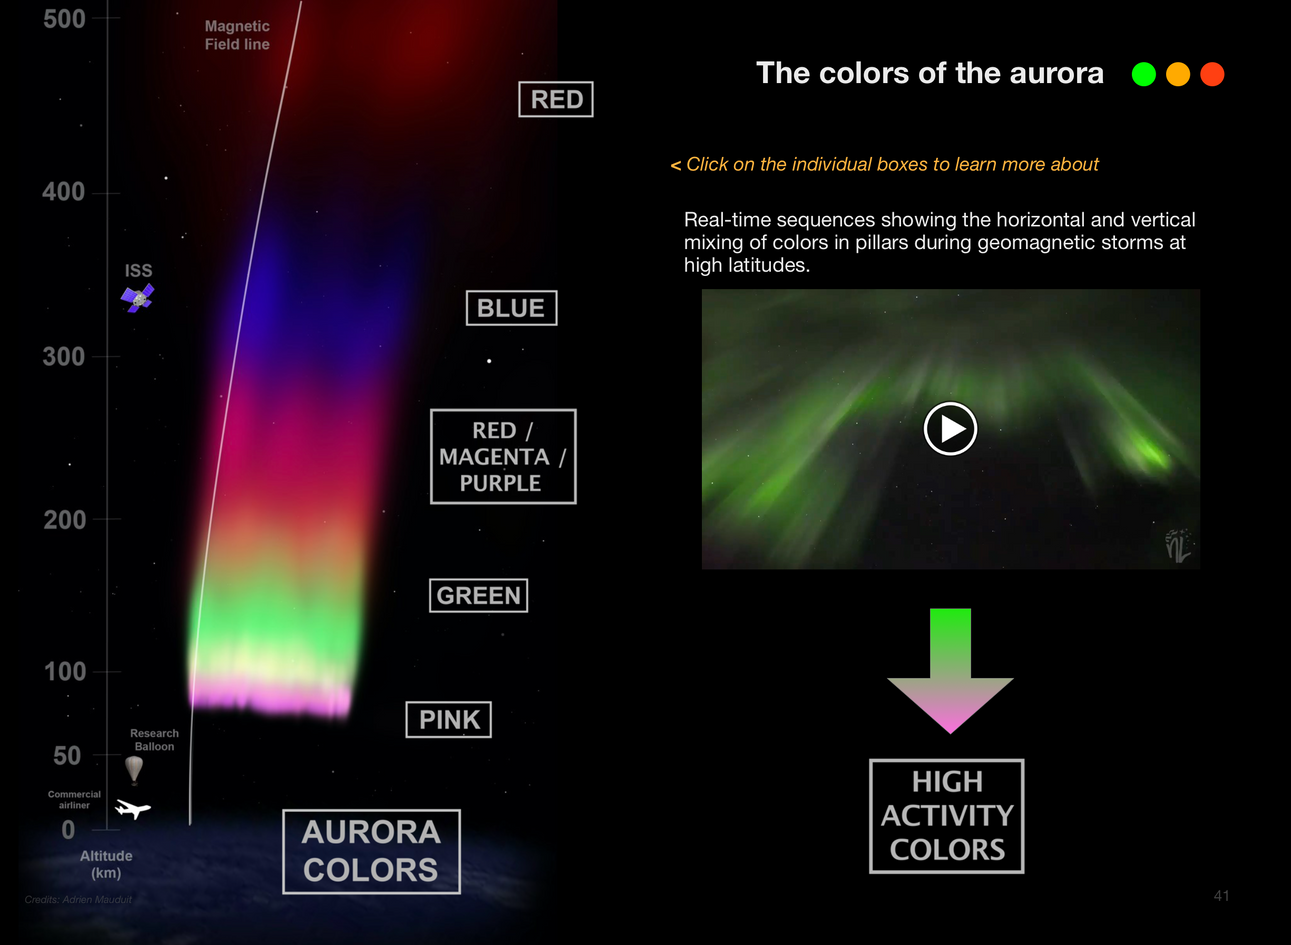 We have an entire chapter dedicated to how the aurora is characterized physically and how we experience it in real-life.   We exapnd on the different shapes it takes, the different colors depending on the activity and altitude, but also the very important auroral behavior during both quiet and active geomagnetic conditions.  We go on about both the physical phenomenon, but also how people experience it in real-life (eye versus camera, how external factors affect the vizualisation...).